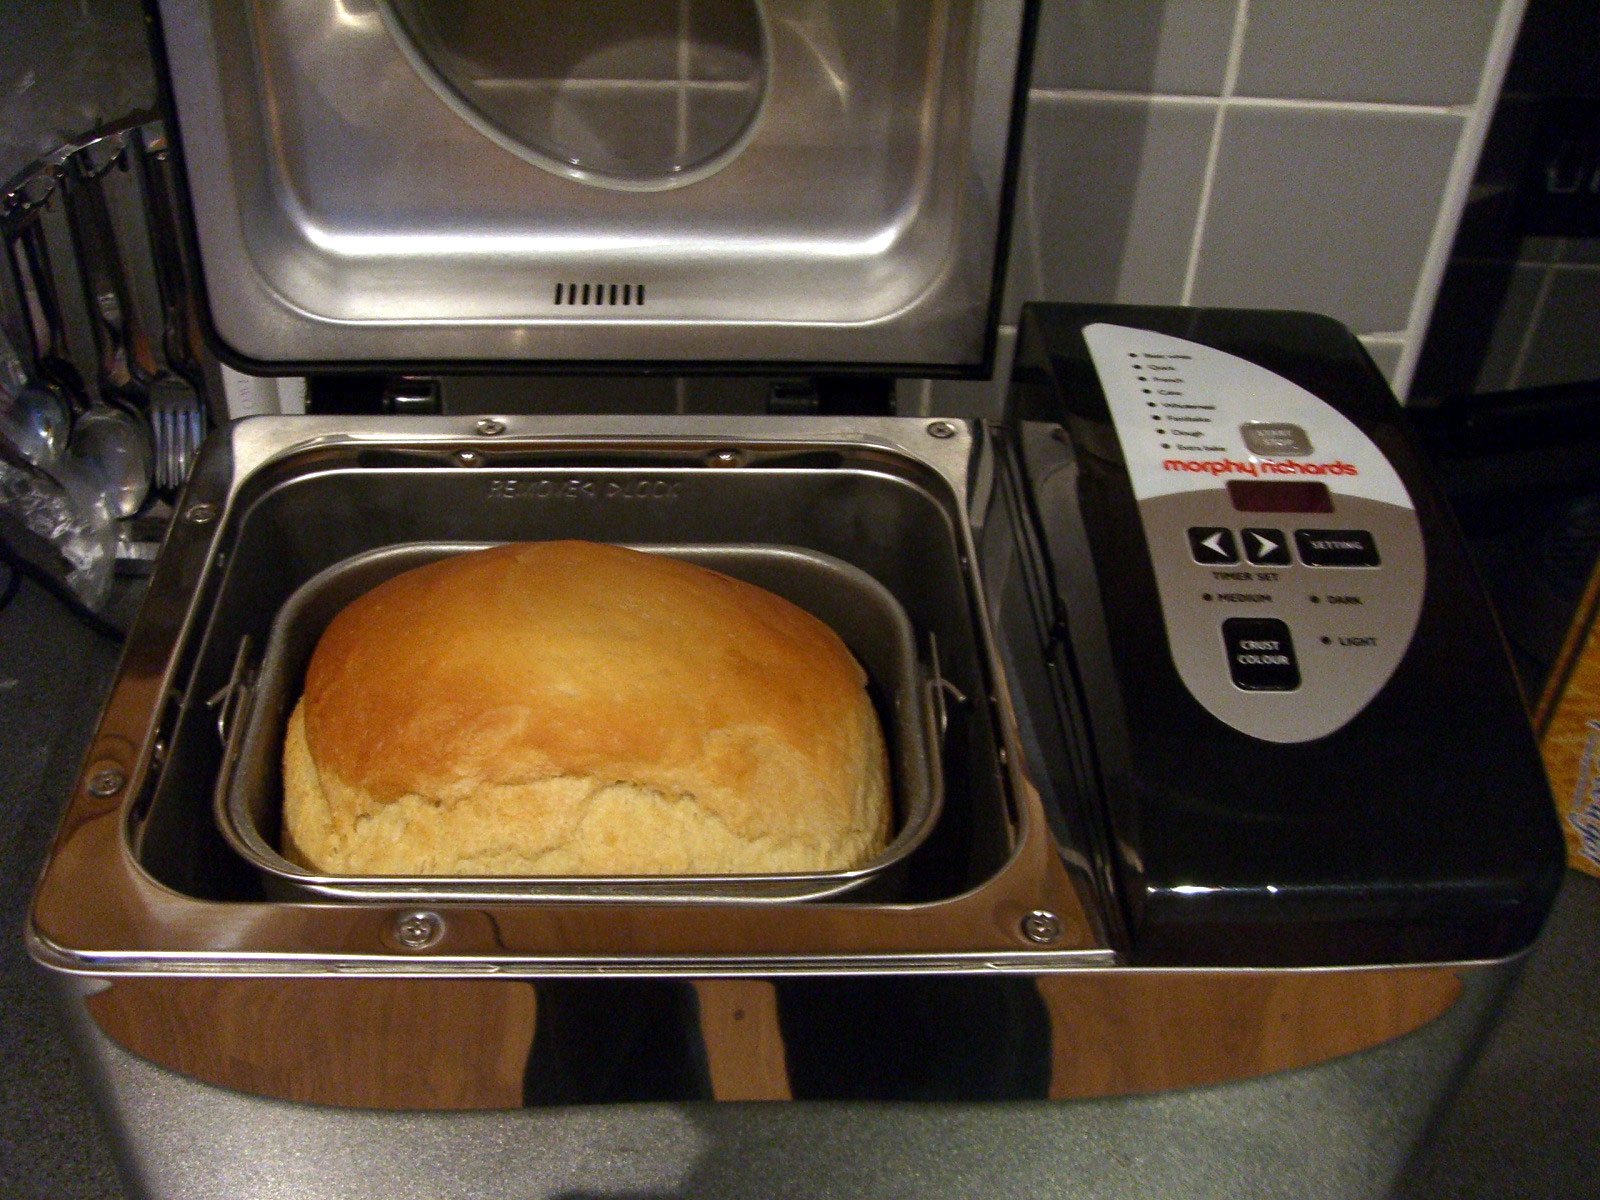 Typical shape of bread baked in bread machine